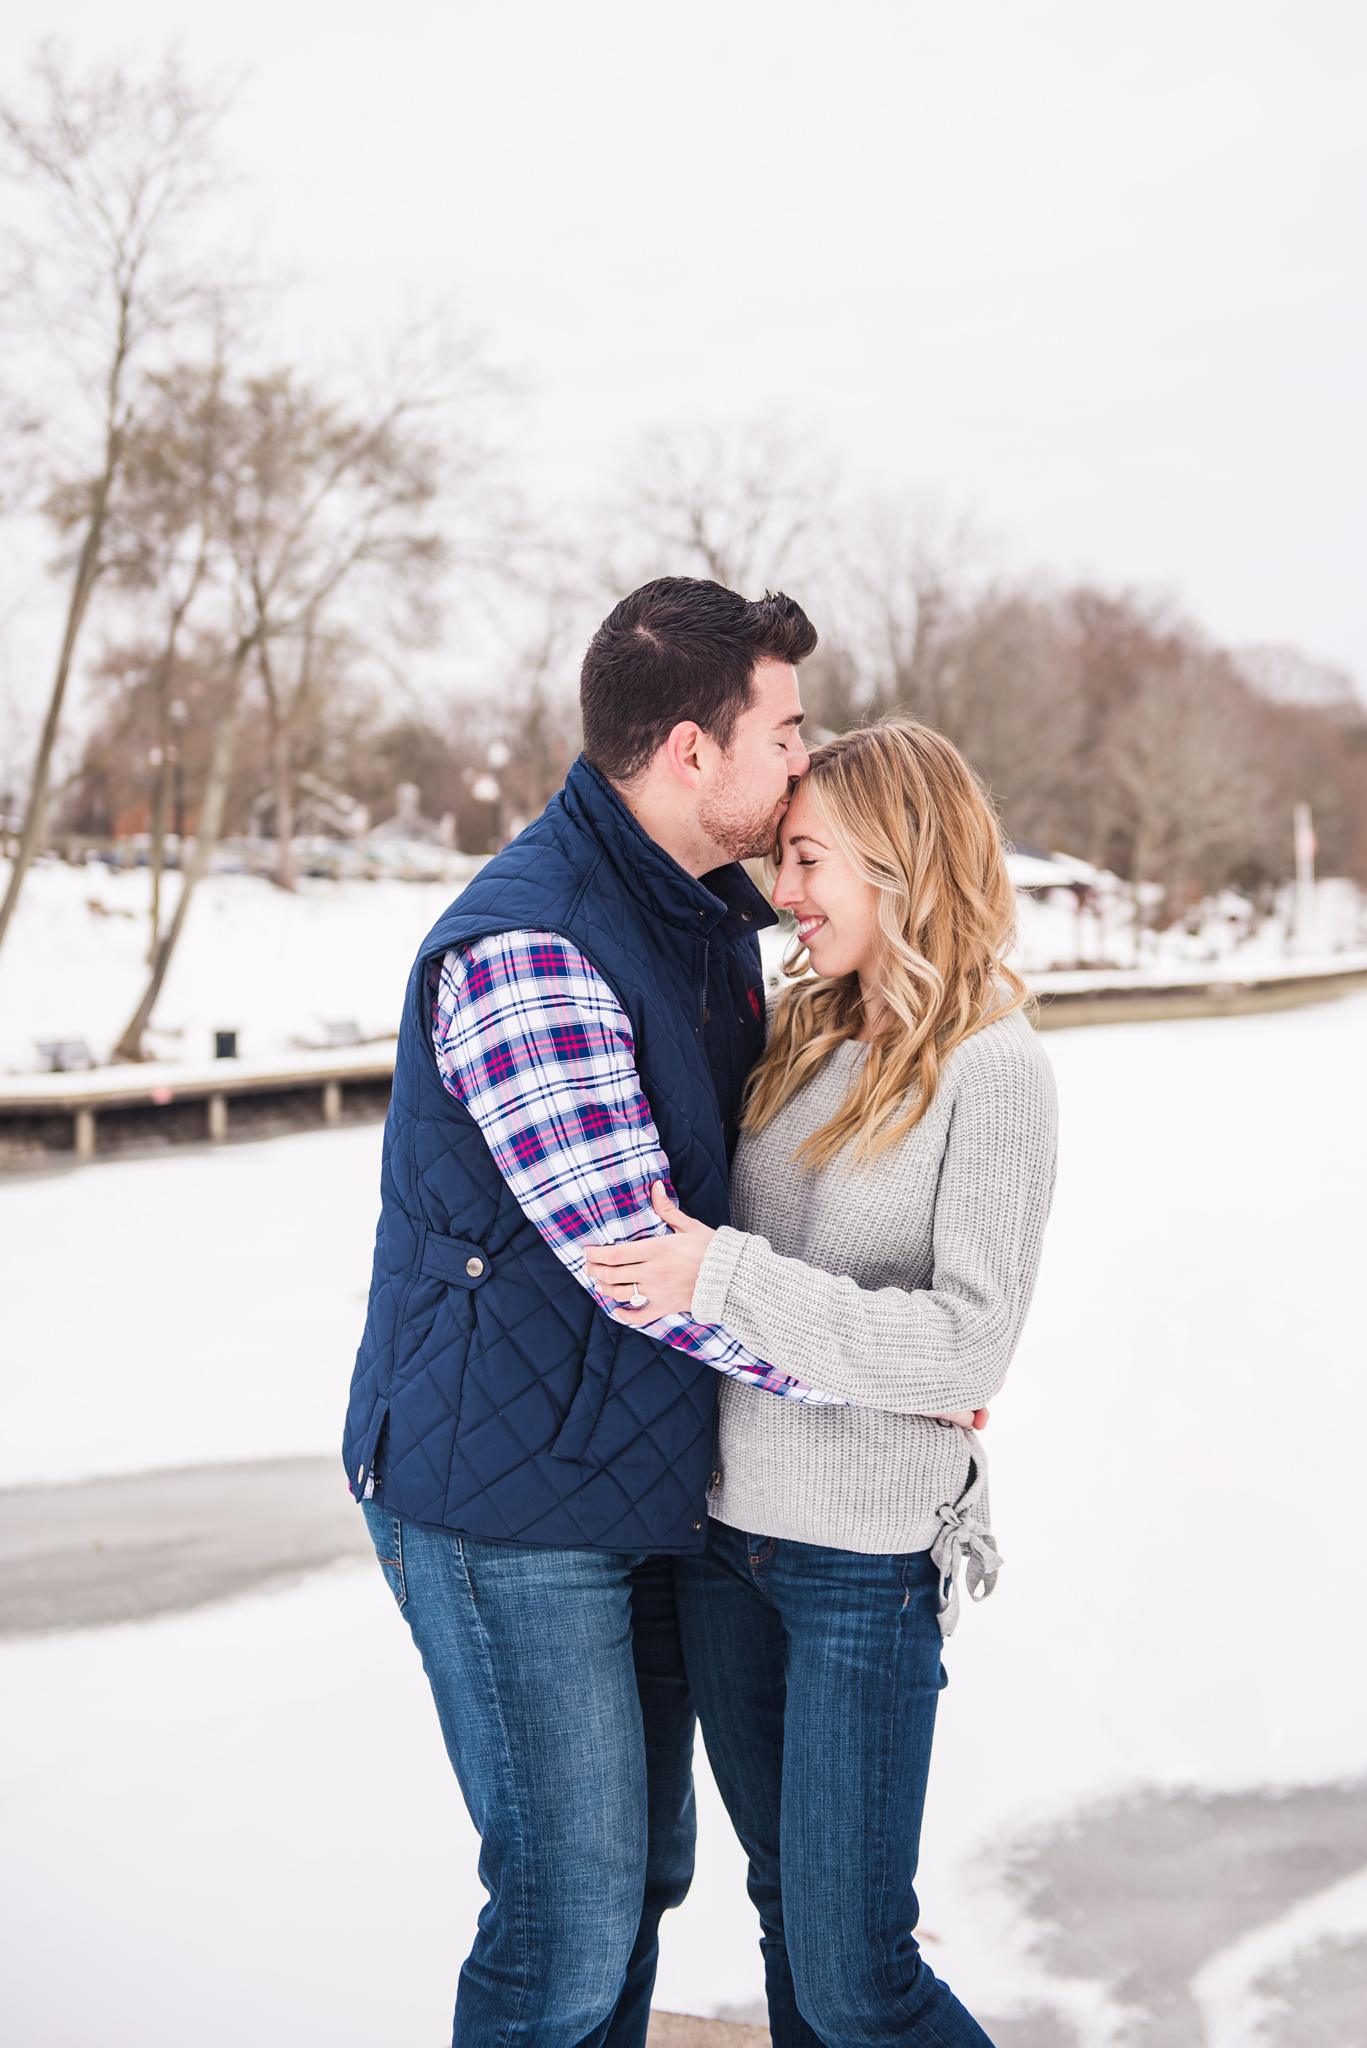 Schoen_Place_Rochester_Engagement_Session_JILL_STUDIO_Rochester_NY_Photographer_DSC_1167.jpg